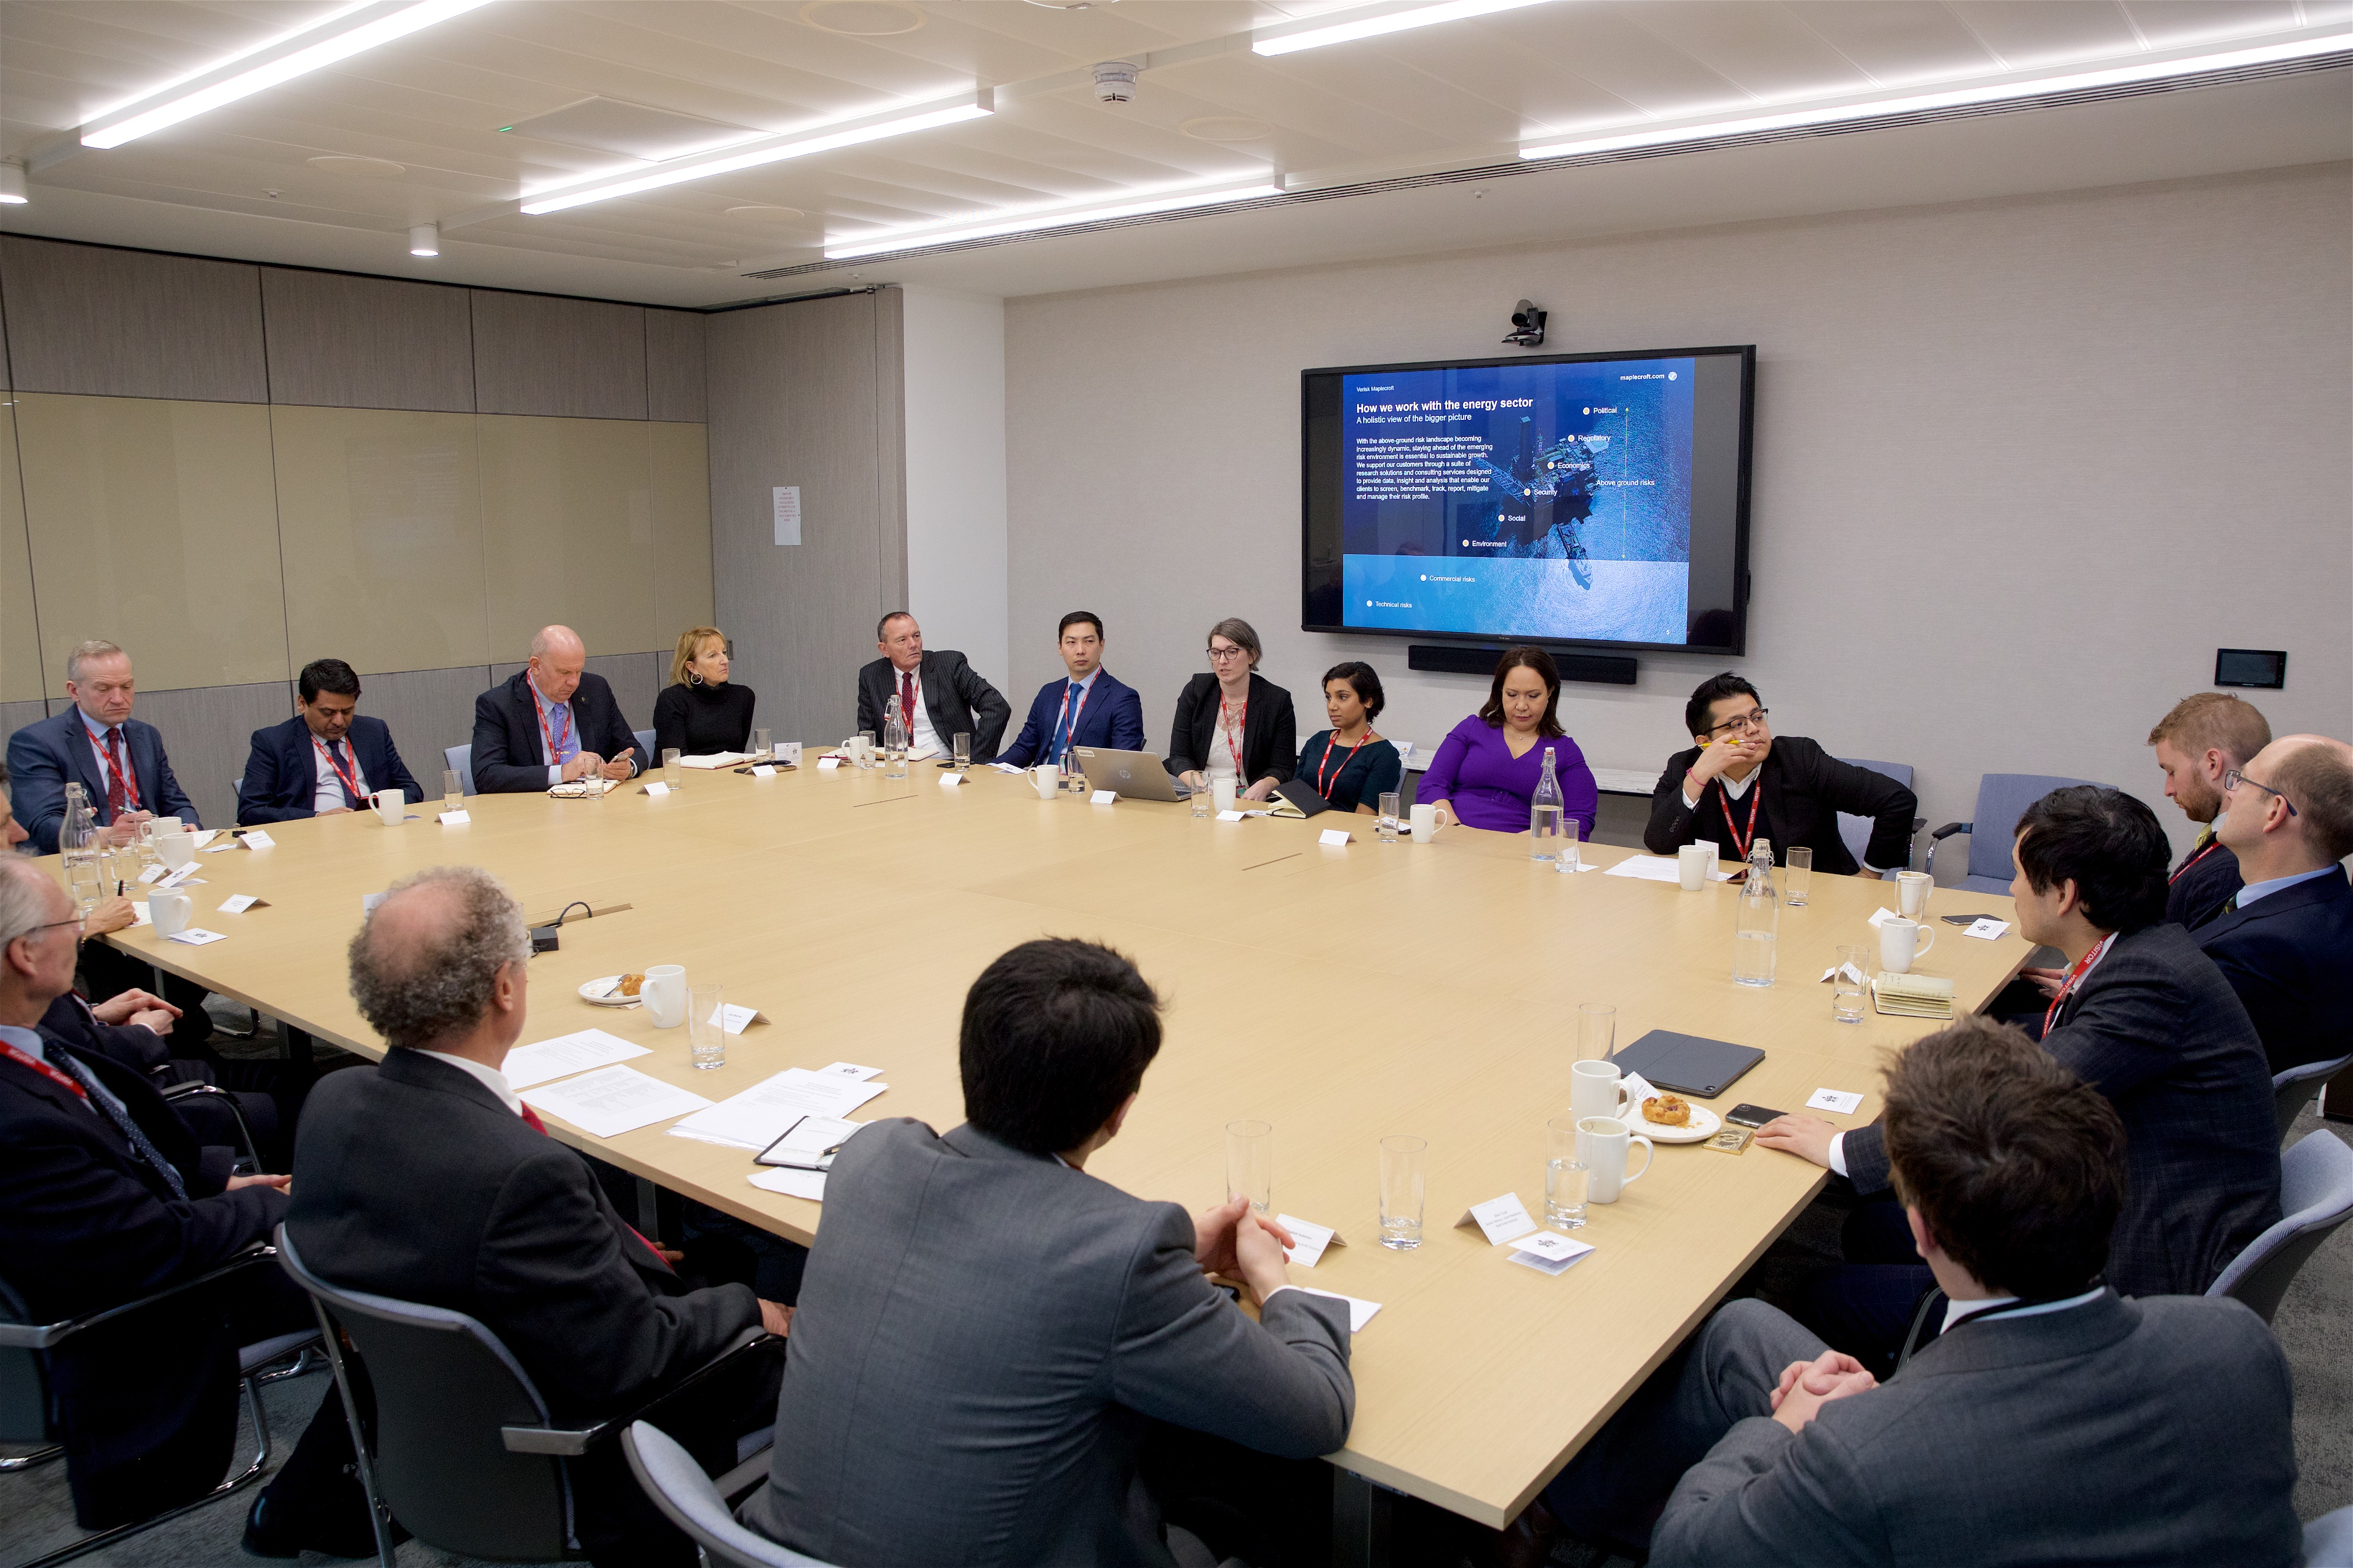 Oil & Gas Roundtable discussion